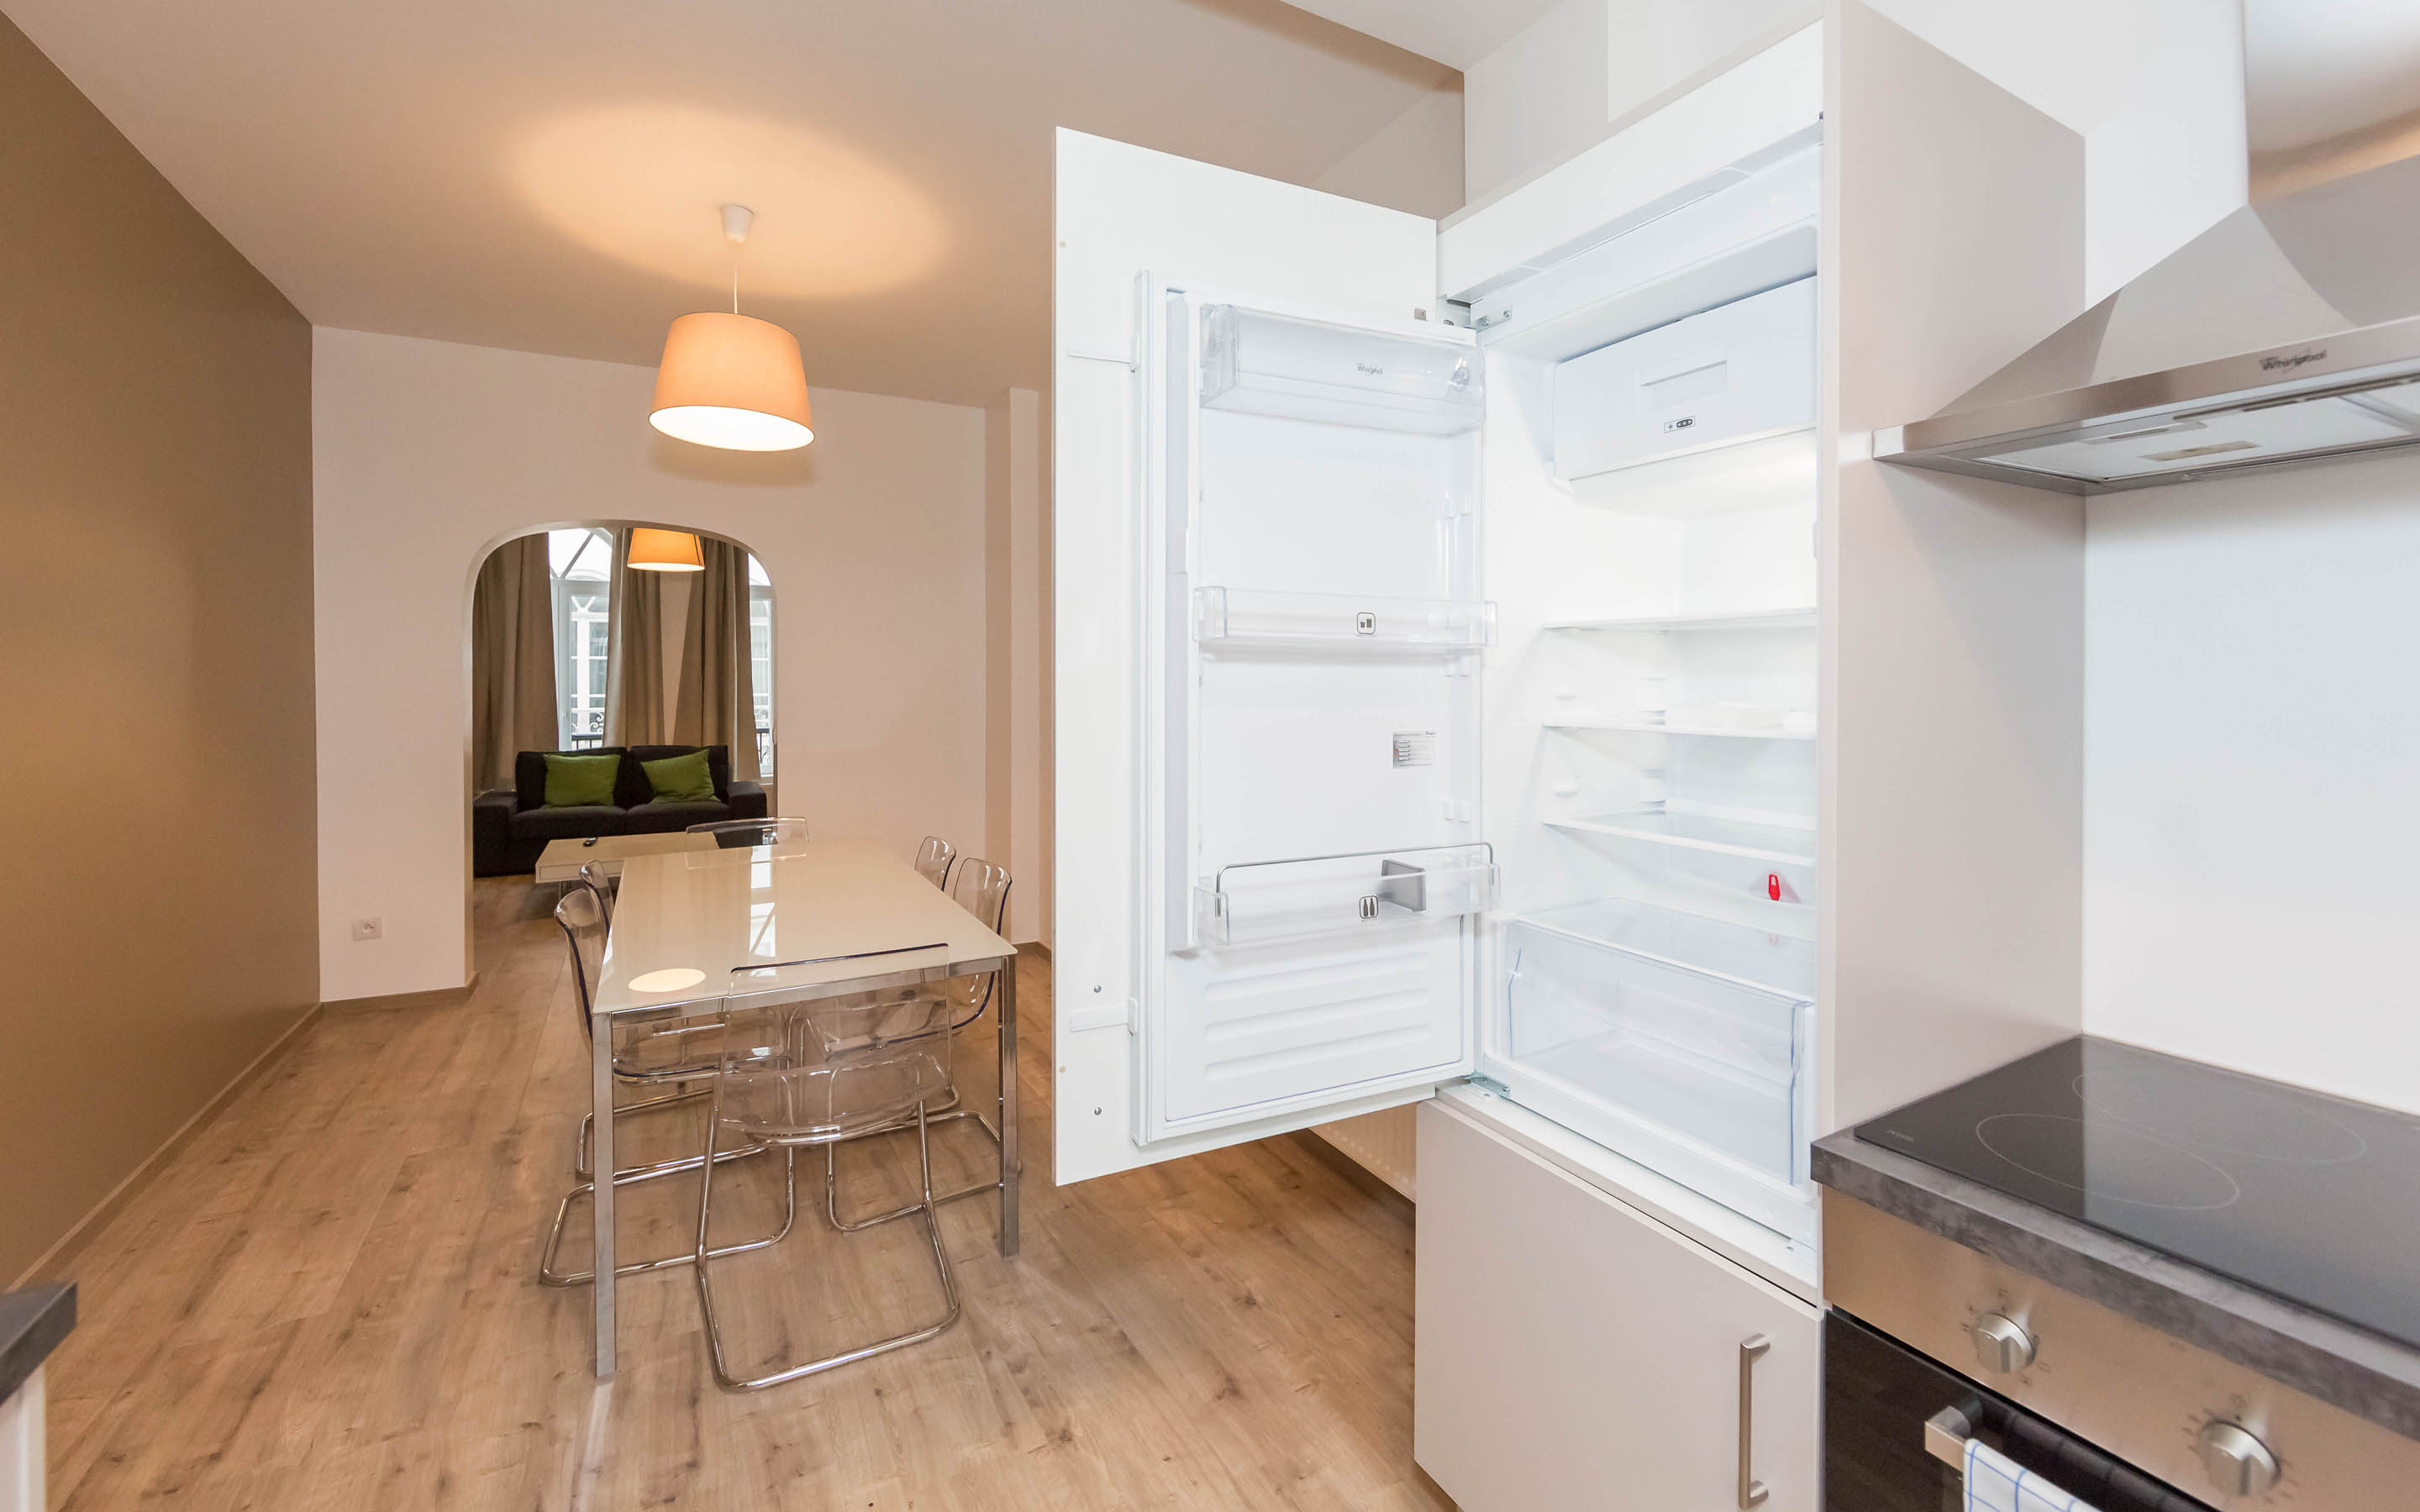 2 bedroom apartment to rent in 18 20 Rue Coppens 1000 Bruxelles